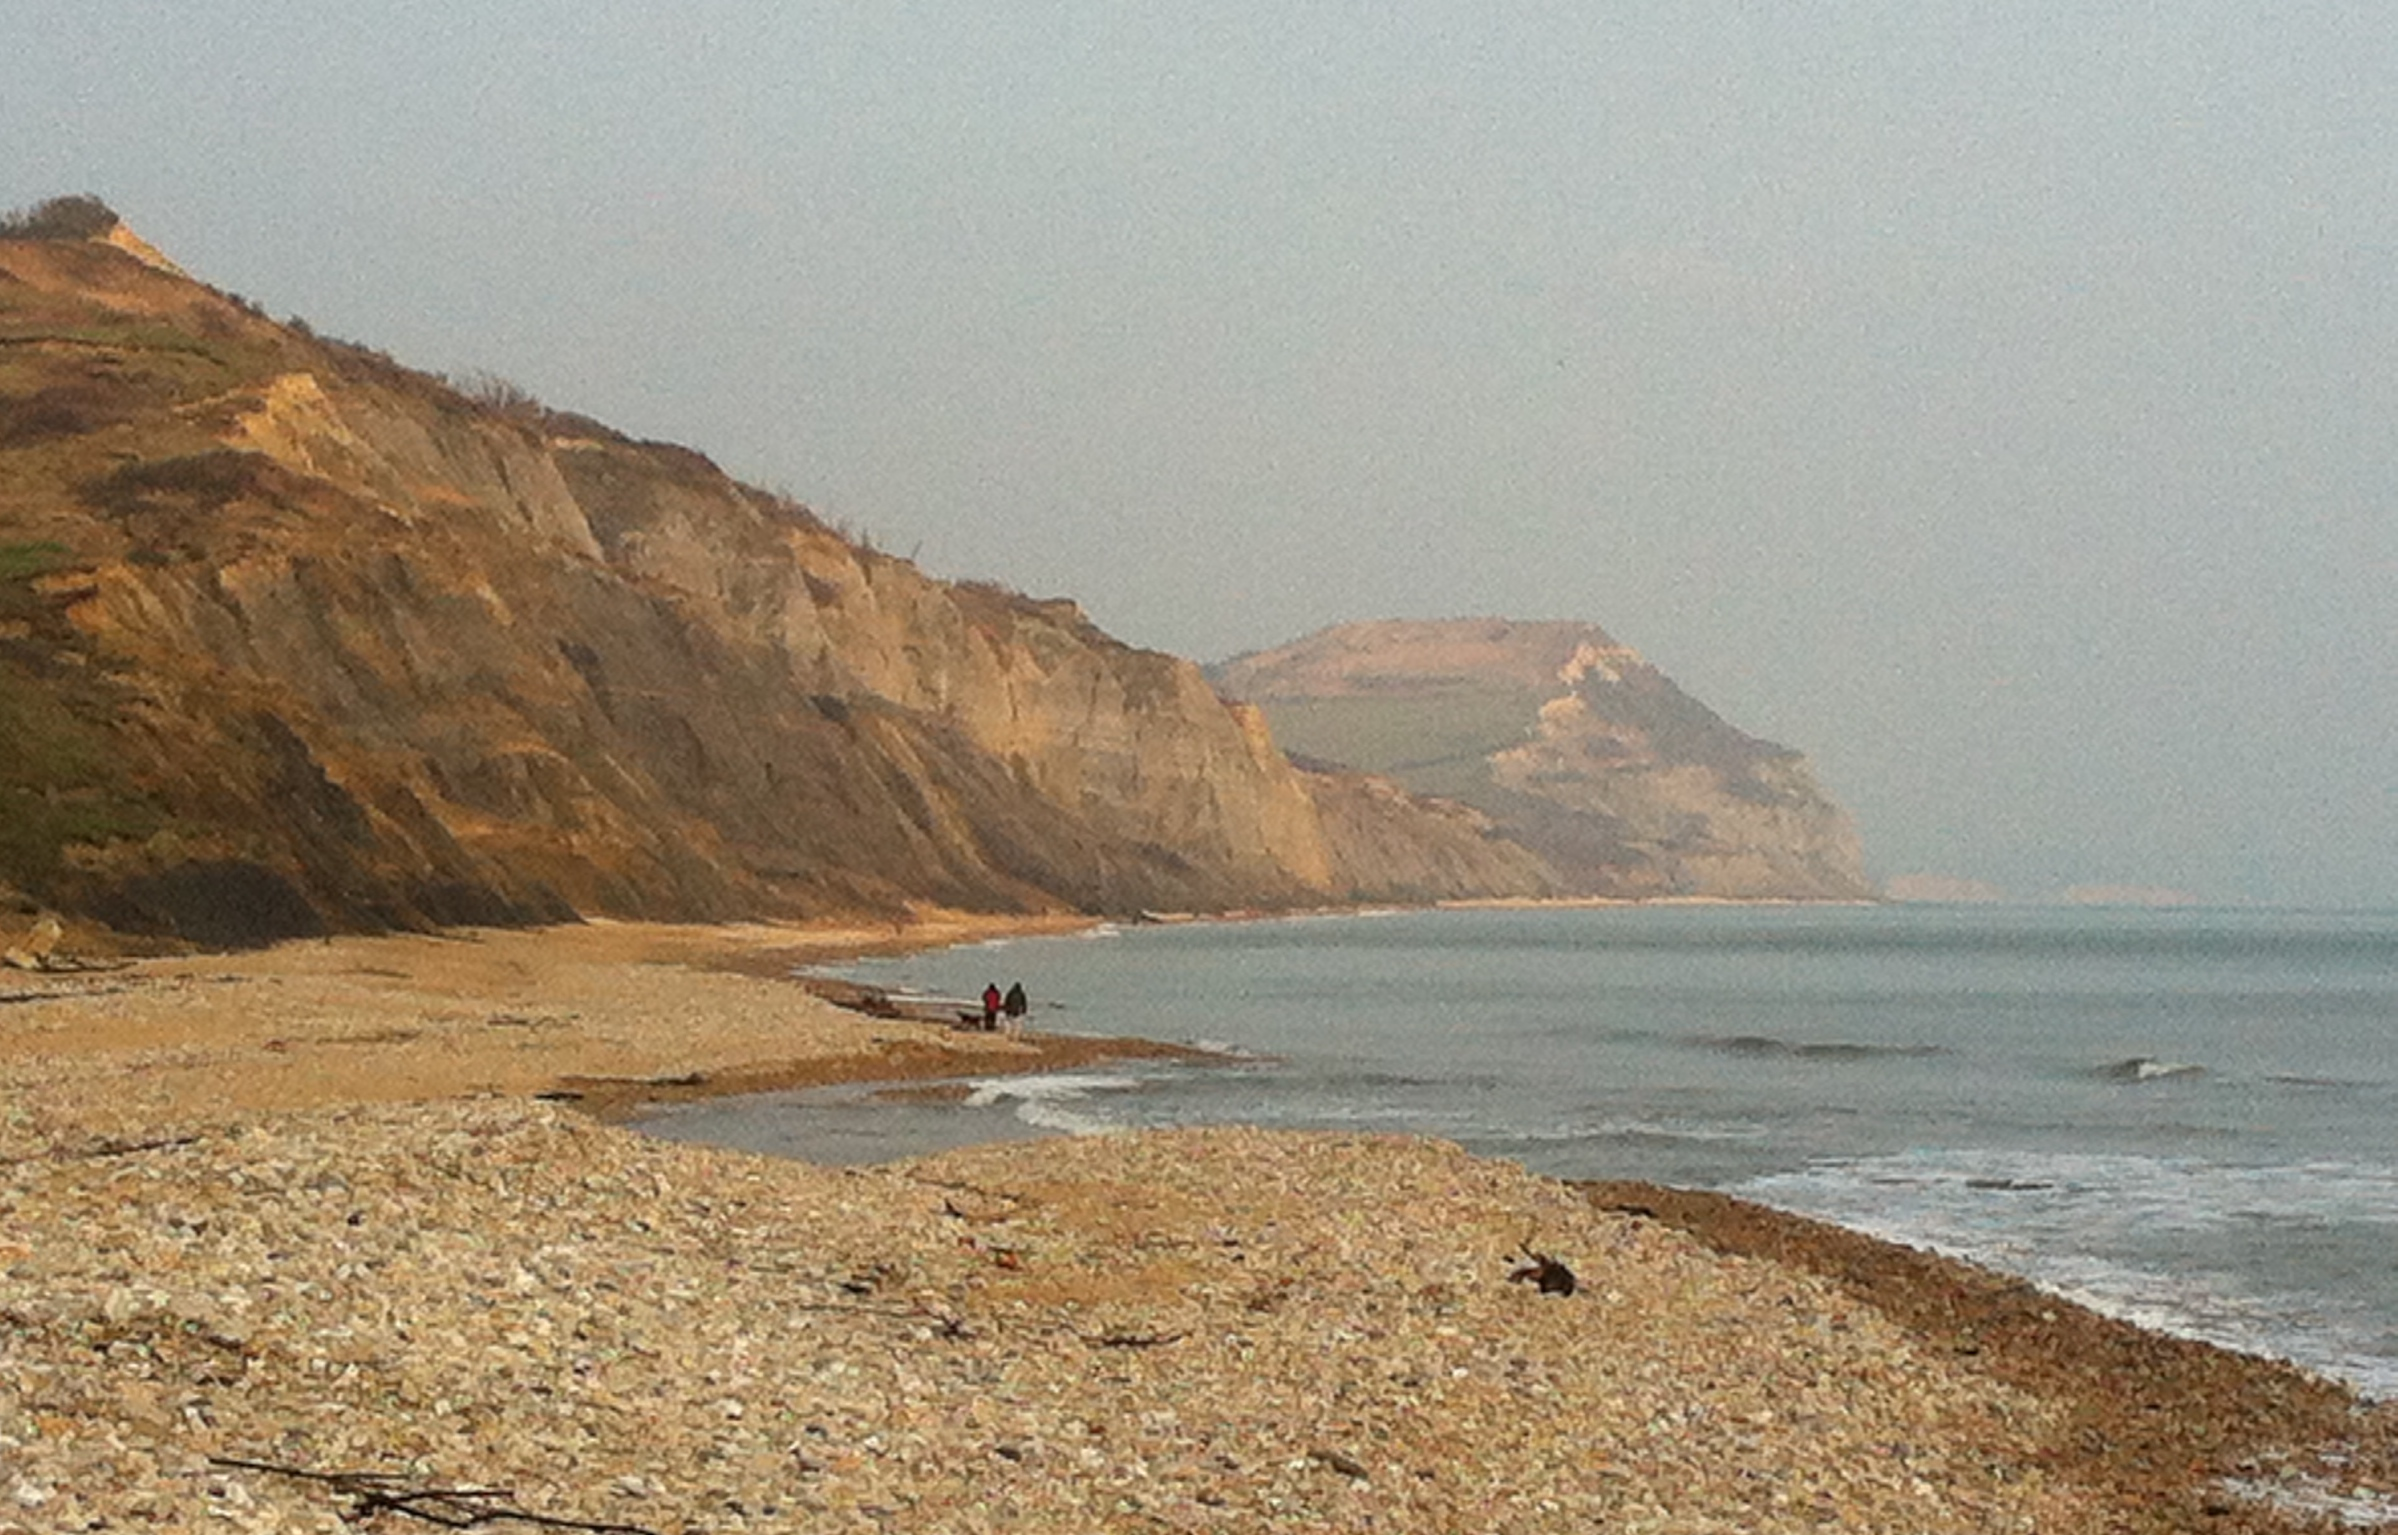 Jurassic Coast at Charmouth